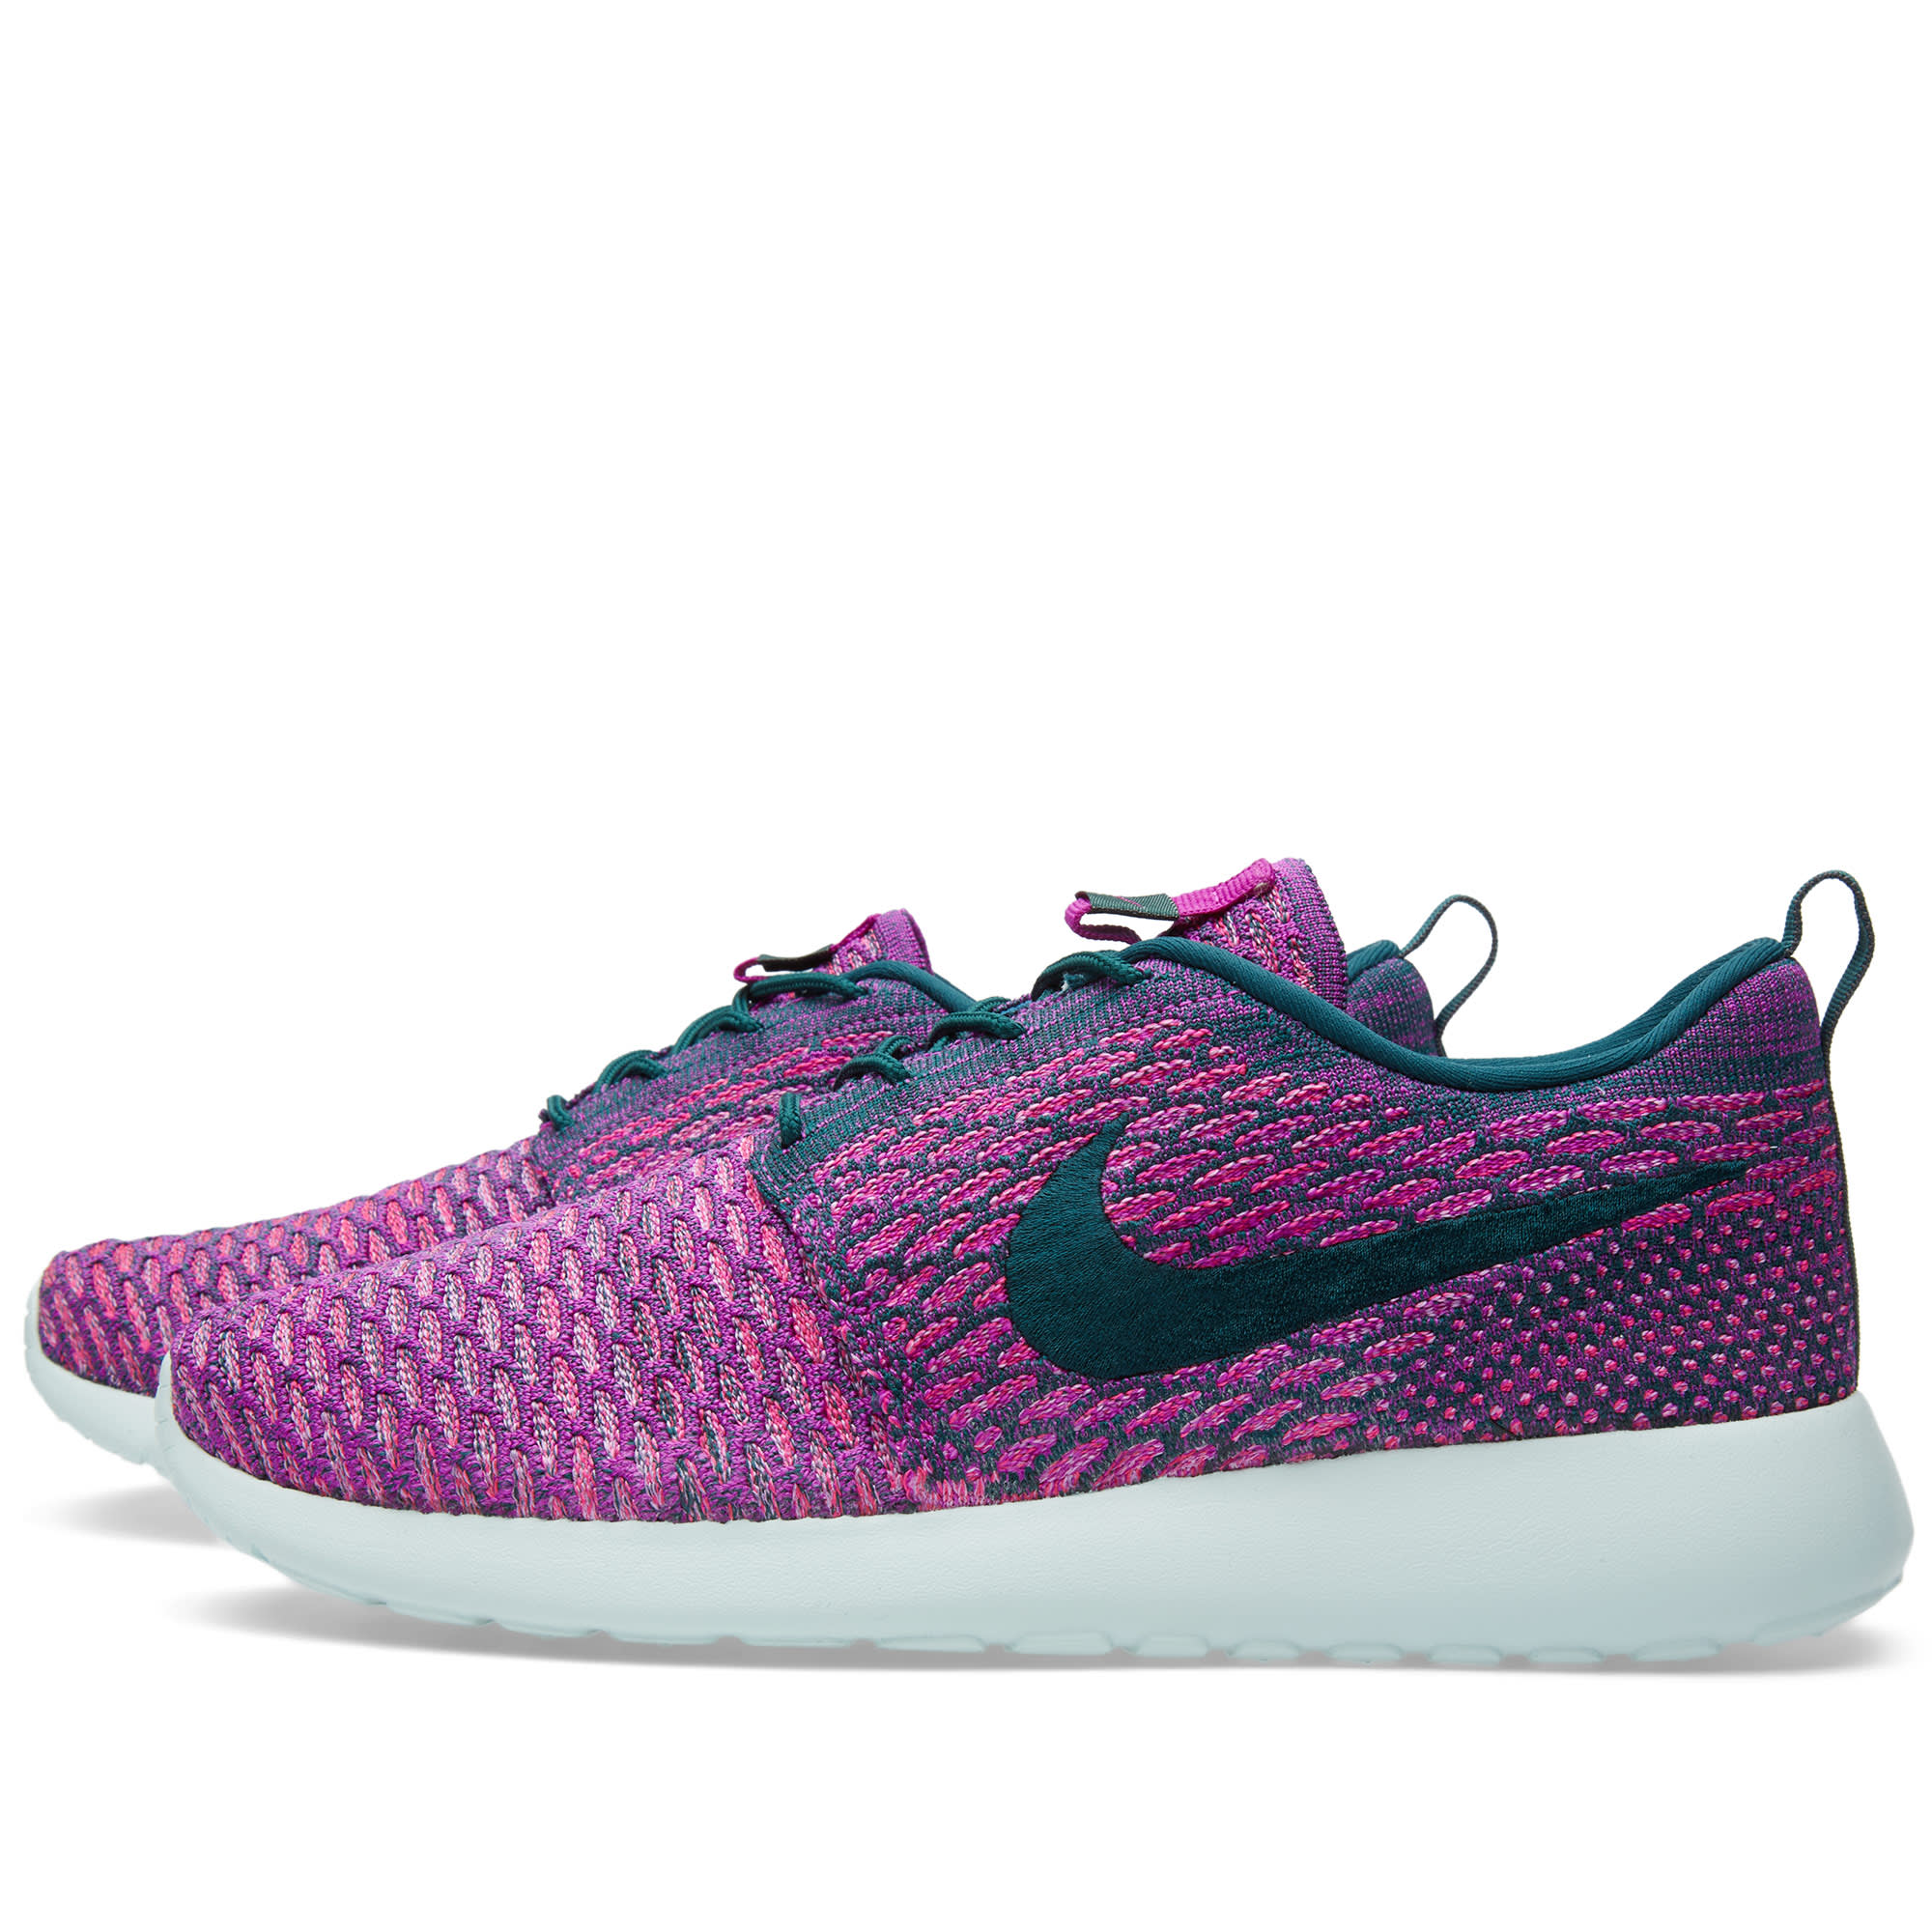 separation shoes 50e82 1a8bf Nike W Roshe One Flyknit